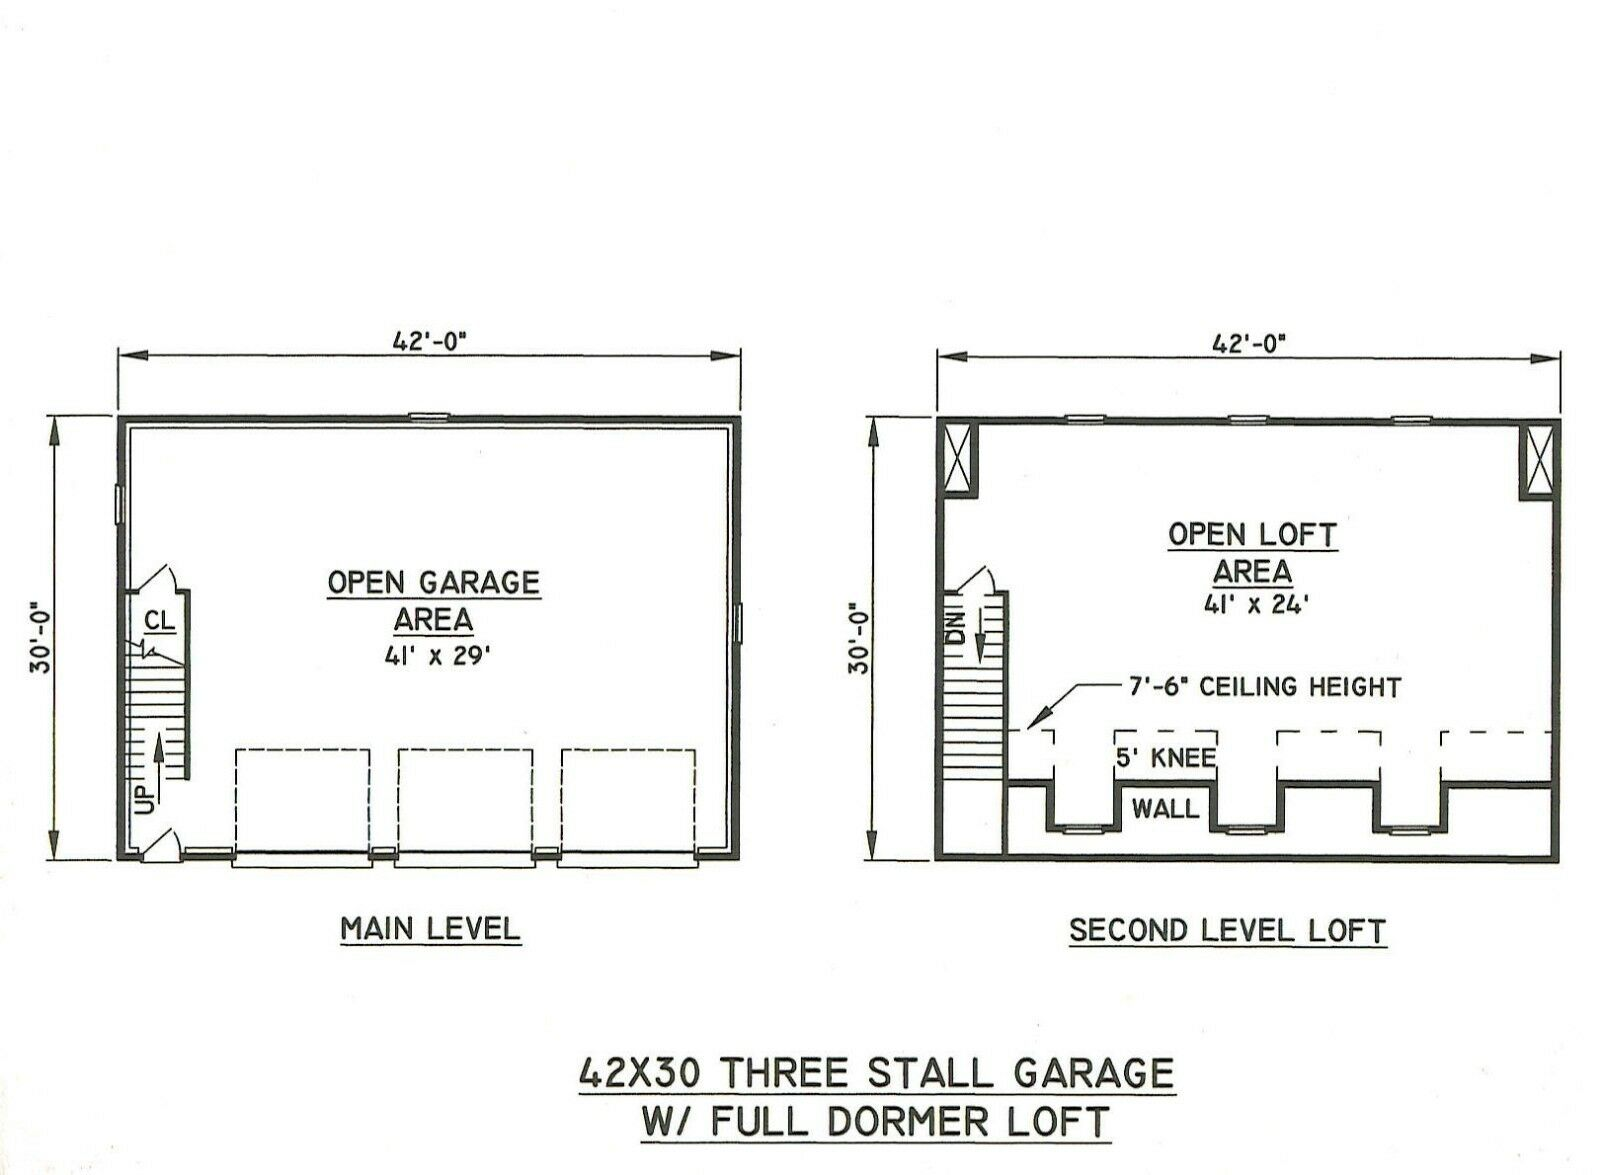 42x30 3 car garage drmd loft building blueprint plans Triple car garage house plans